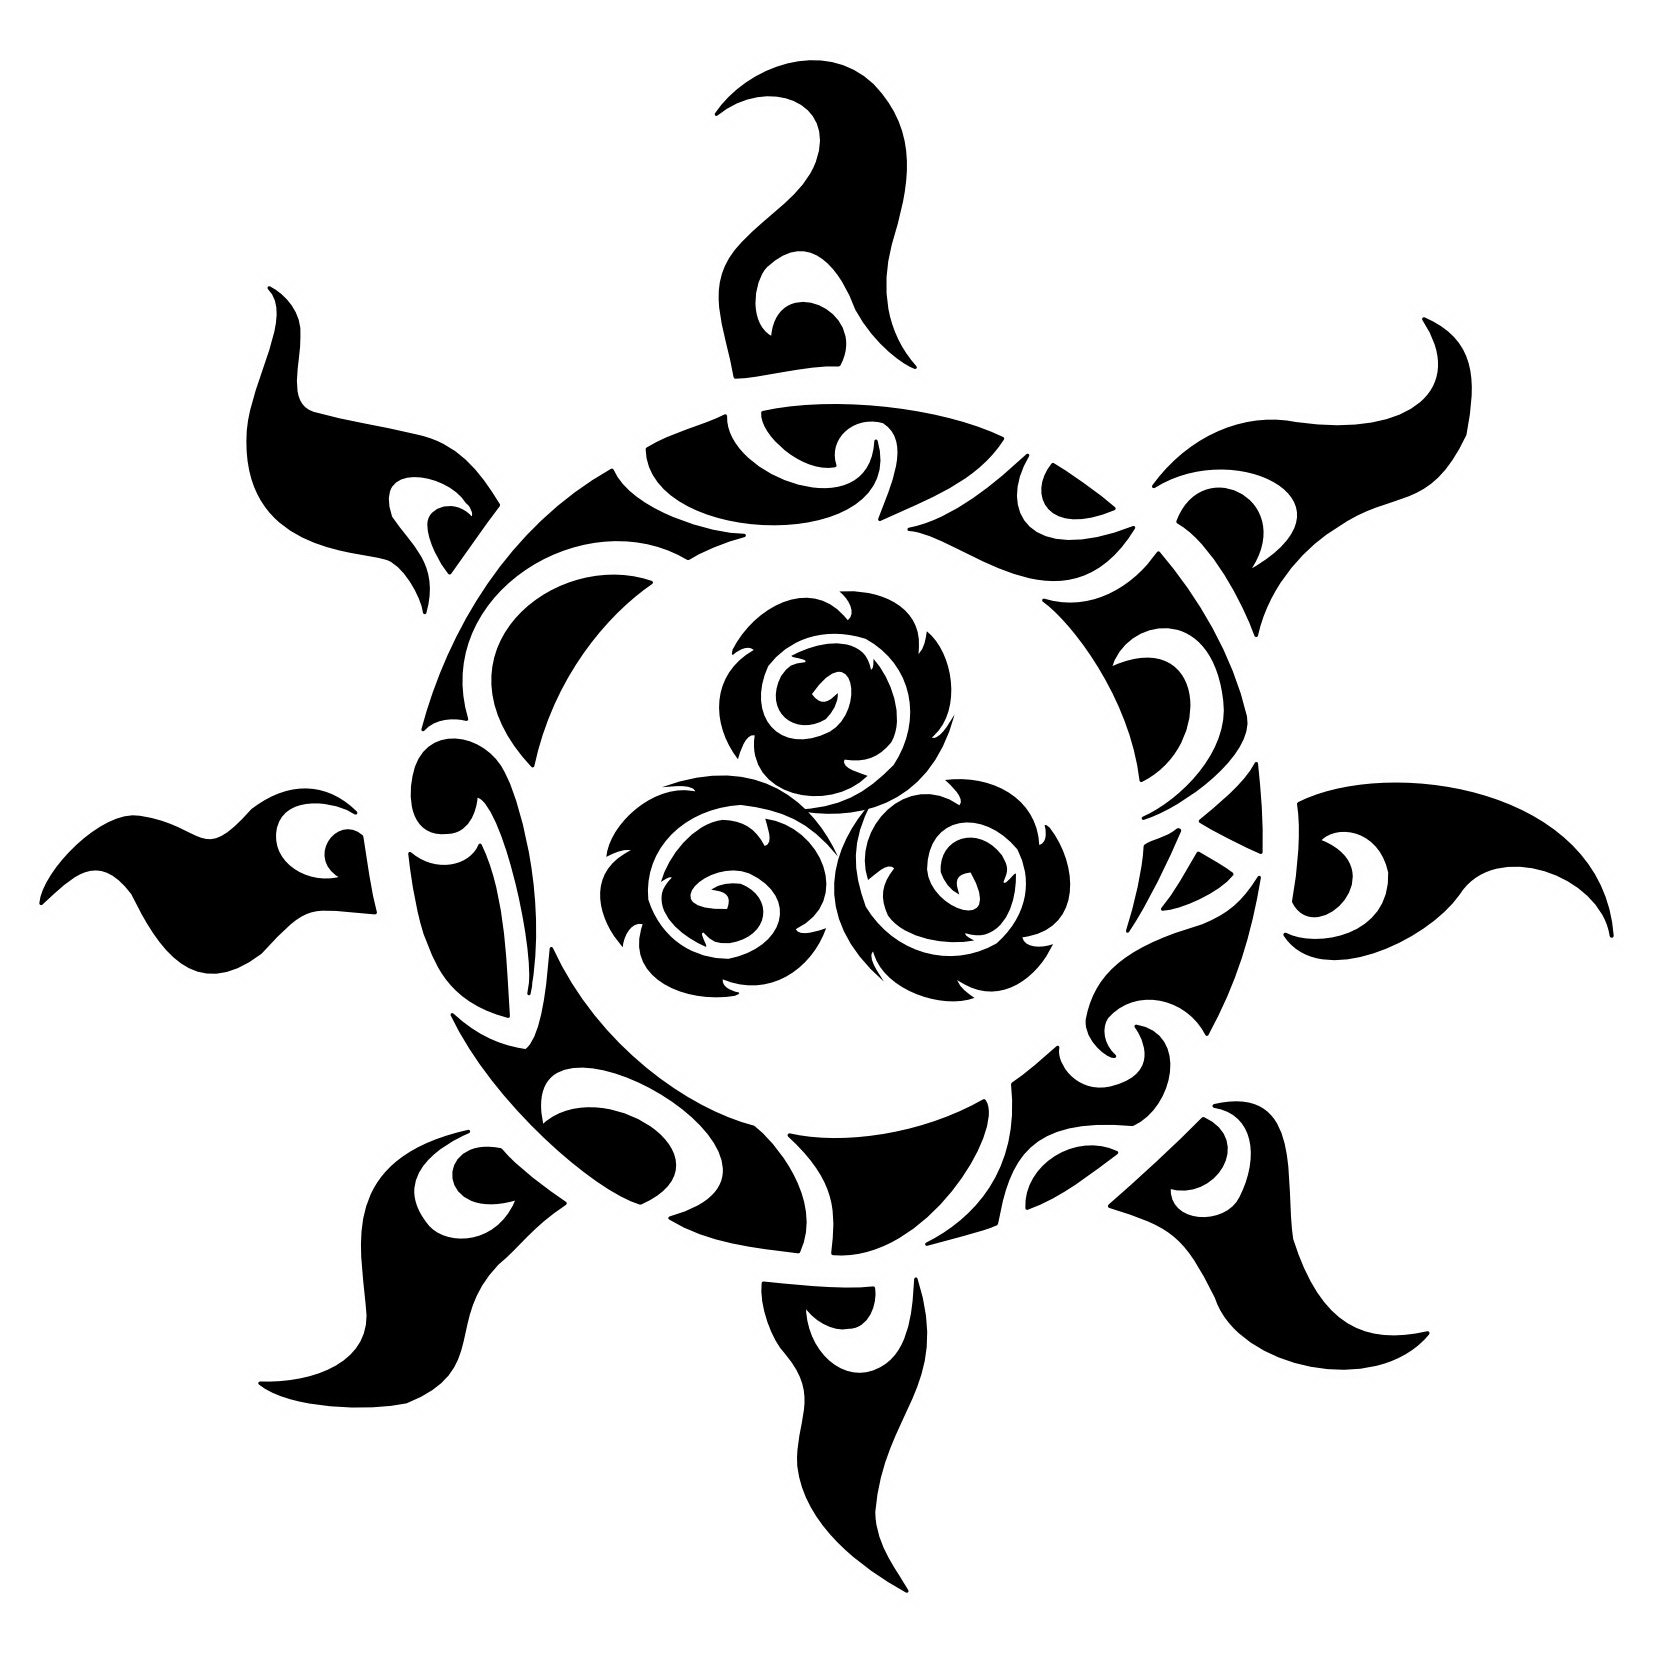 Polynesia clipart symbol meaning And Sun and symbols